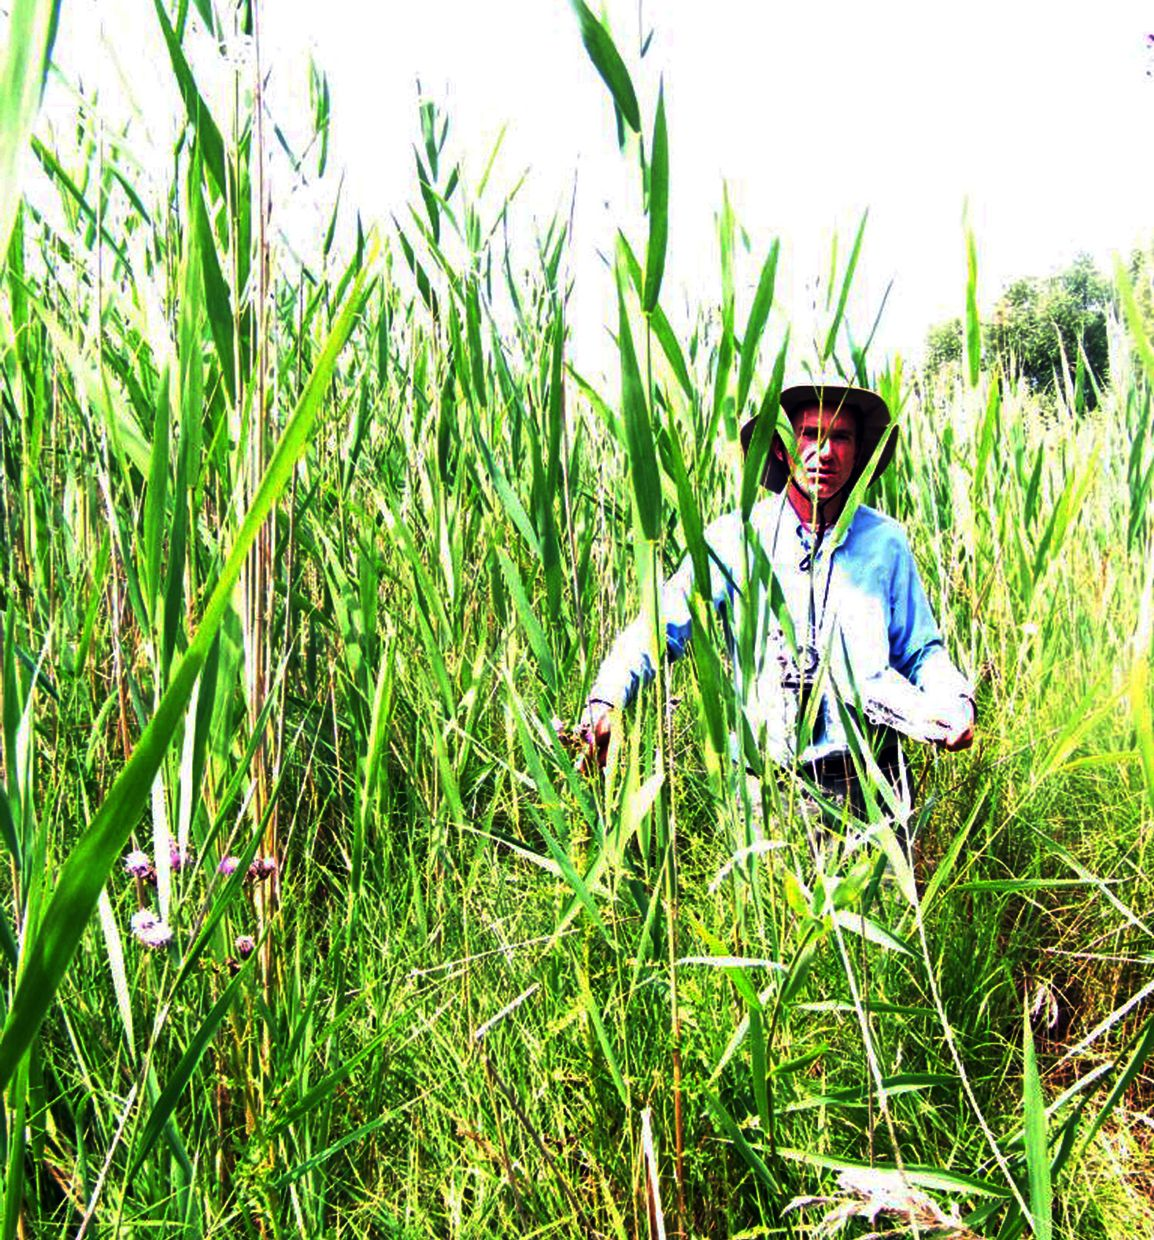 The invasive European Common Reed, or Phragmites, is Canada's 'worst invasive plant species' but volunteers along the Lake Huron shoreline are helping to fight it.